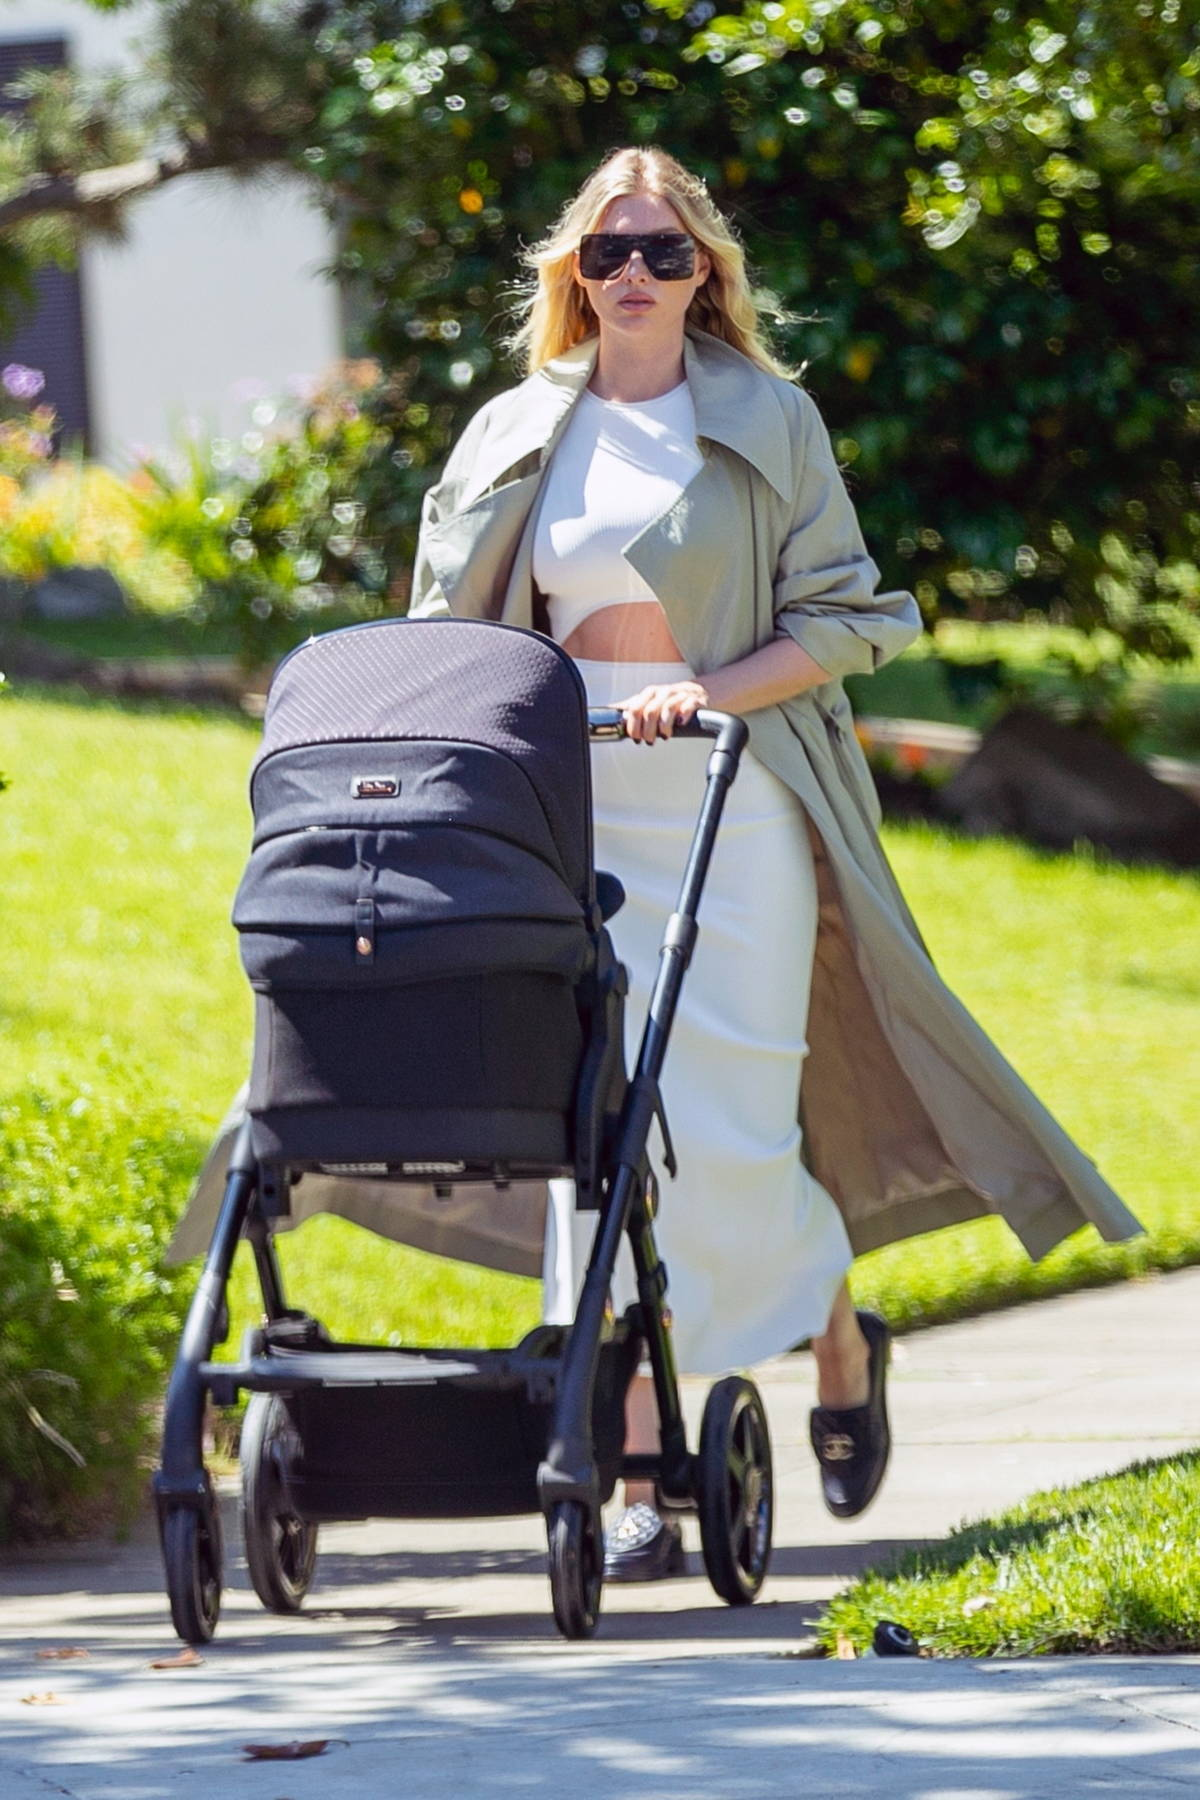 Elsa Hosk looks chic in a light green trench coat while out for a stroll with her baby in Pasadena, California